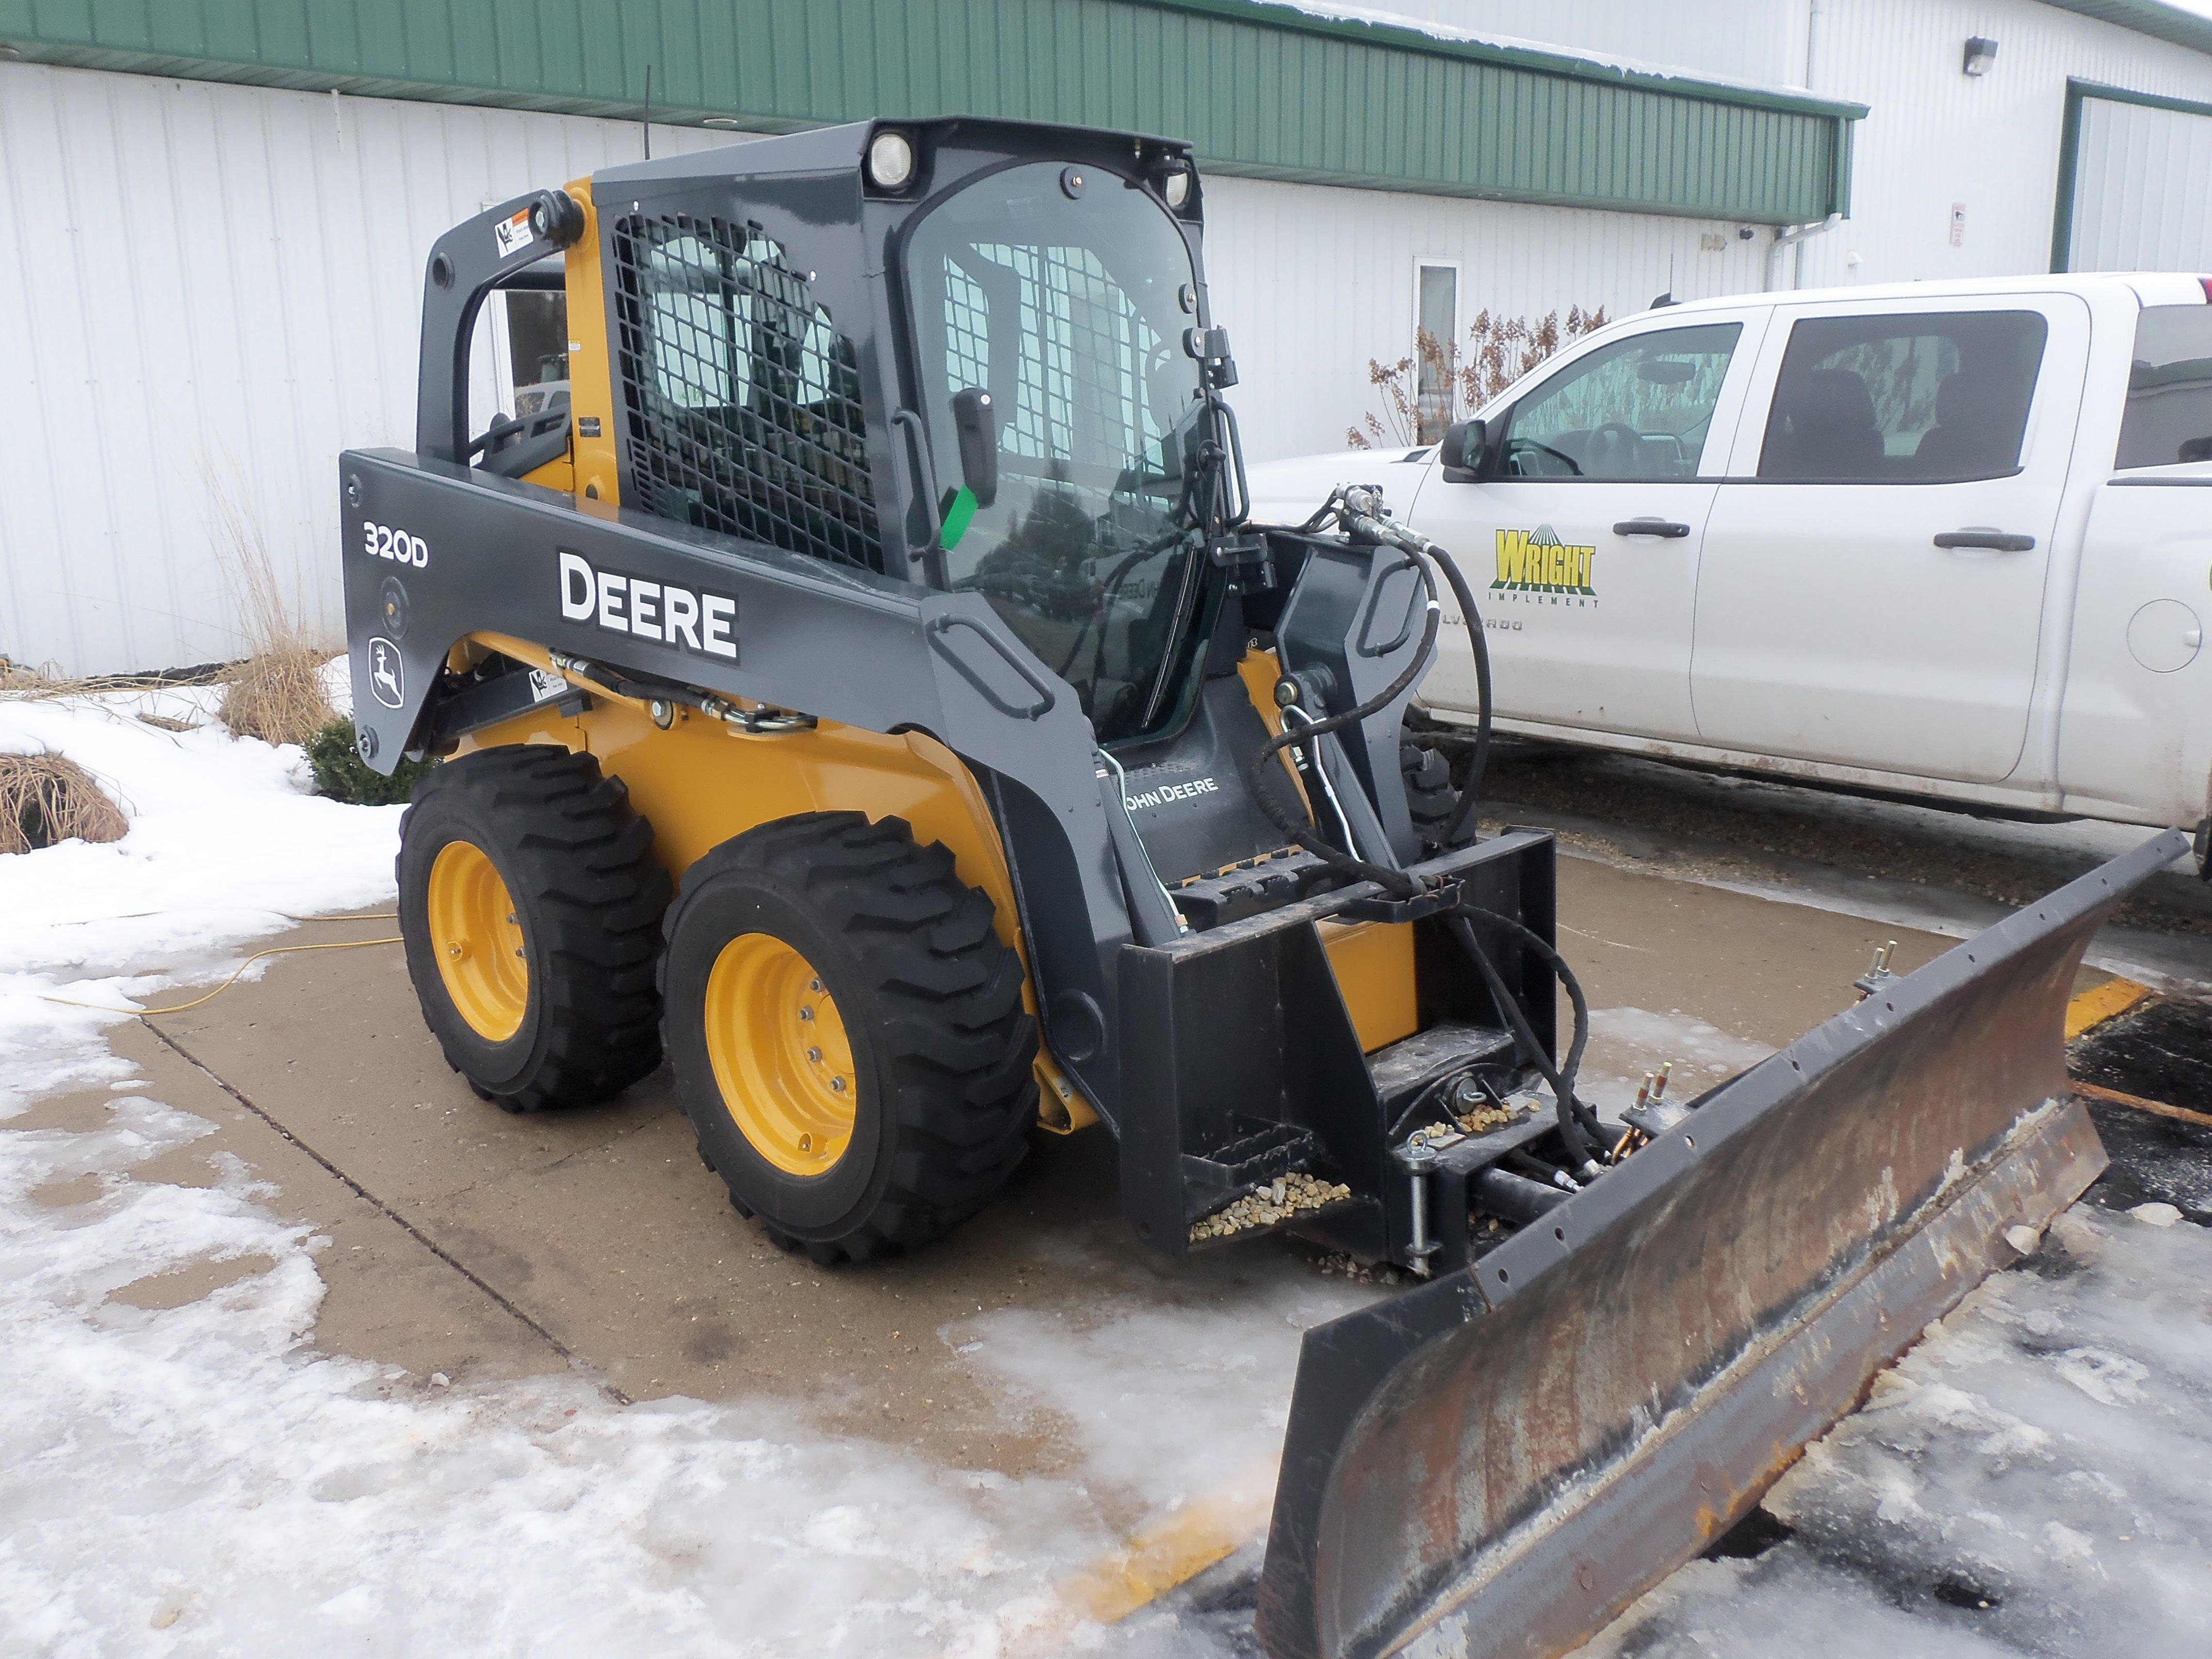 John Deere 320D skid steer loader with snow plow blade.Saw this at Wright  Implement in Crawfordsville